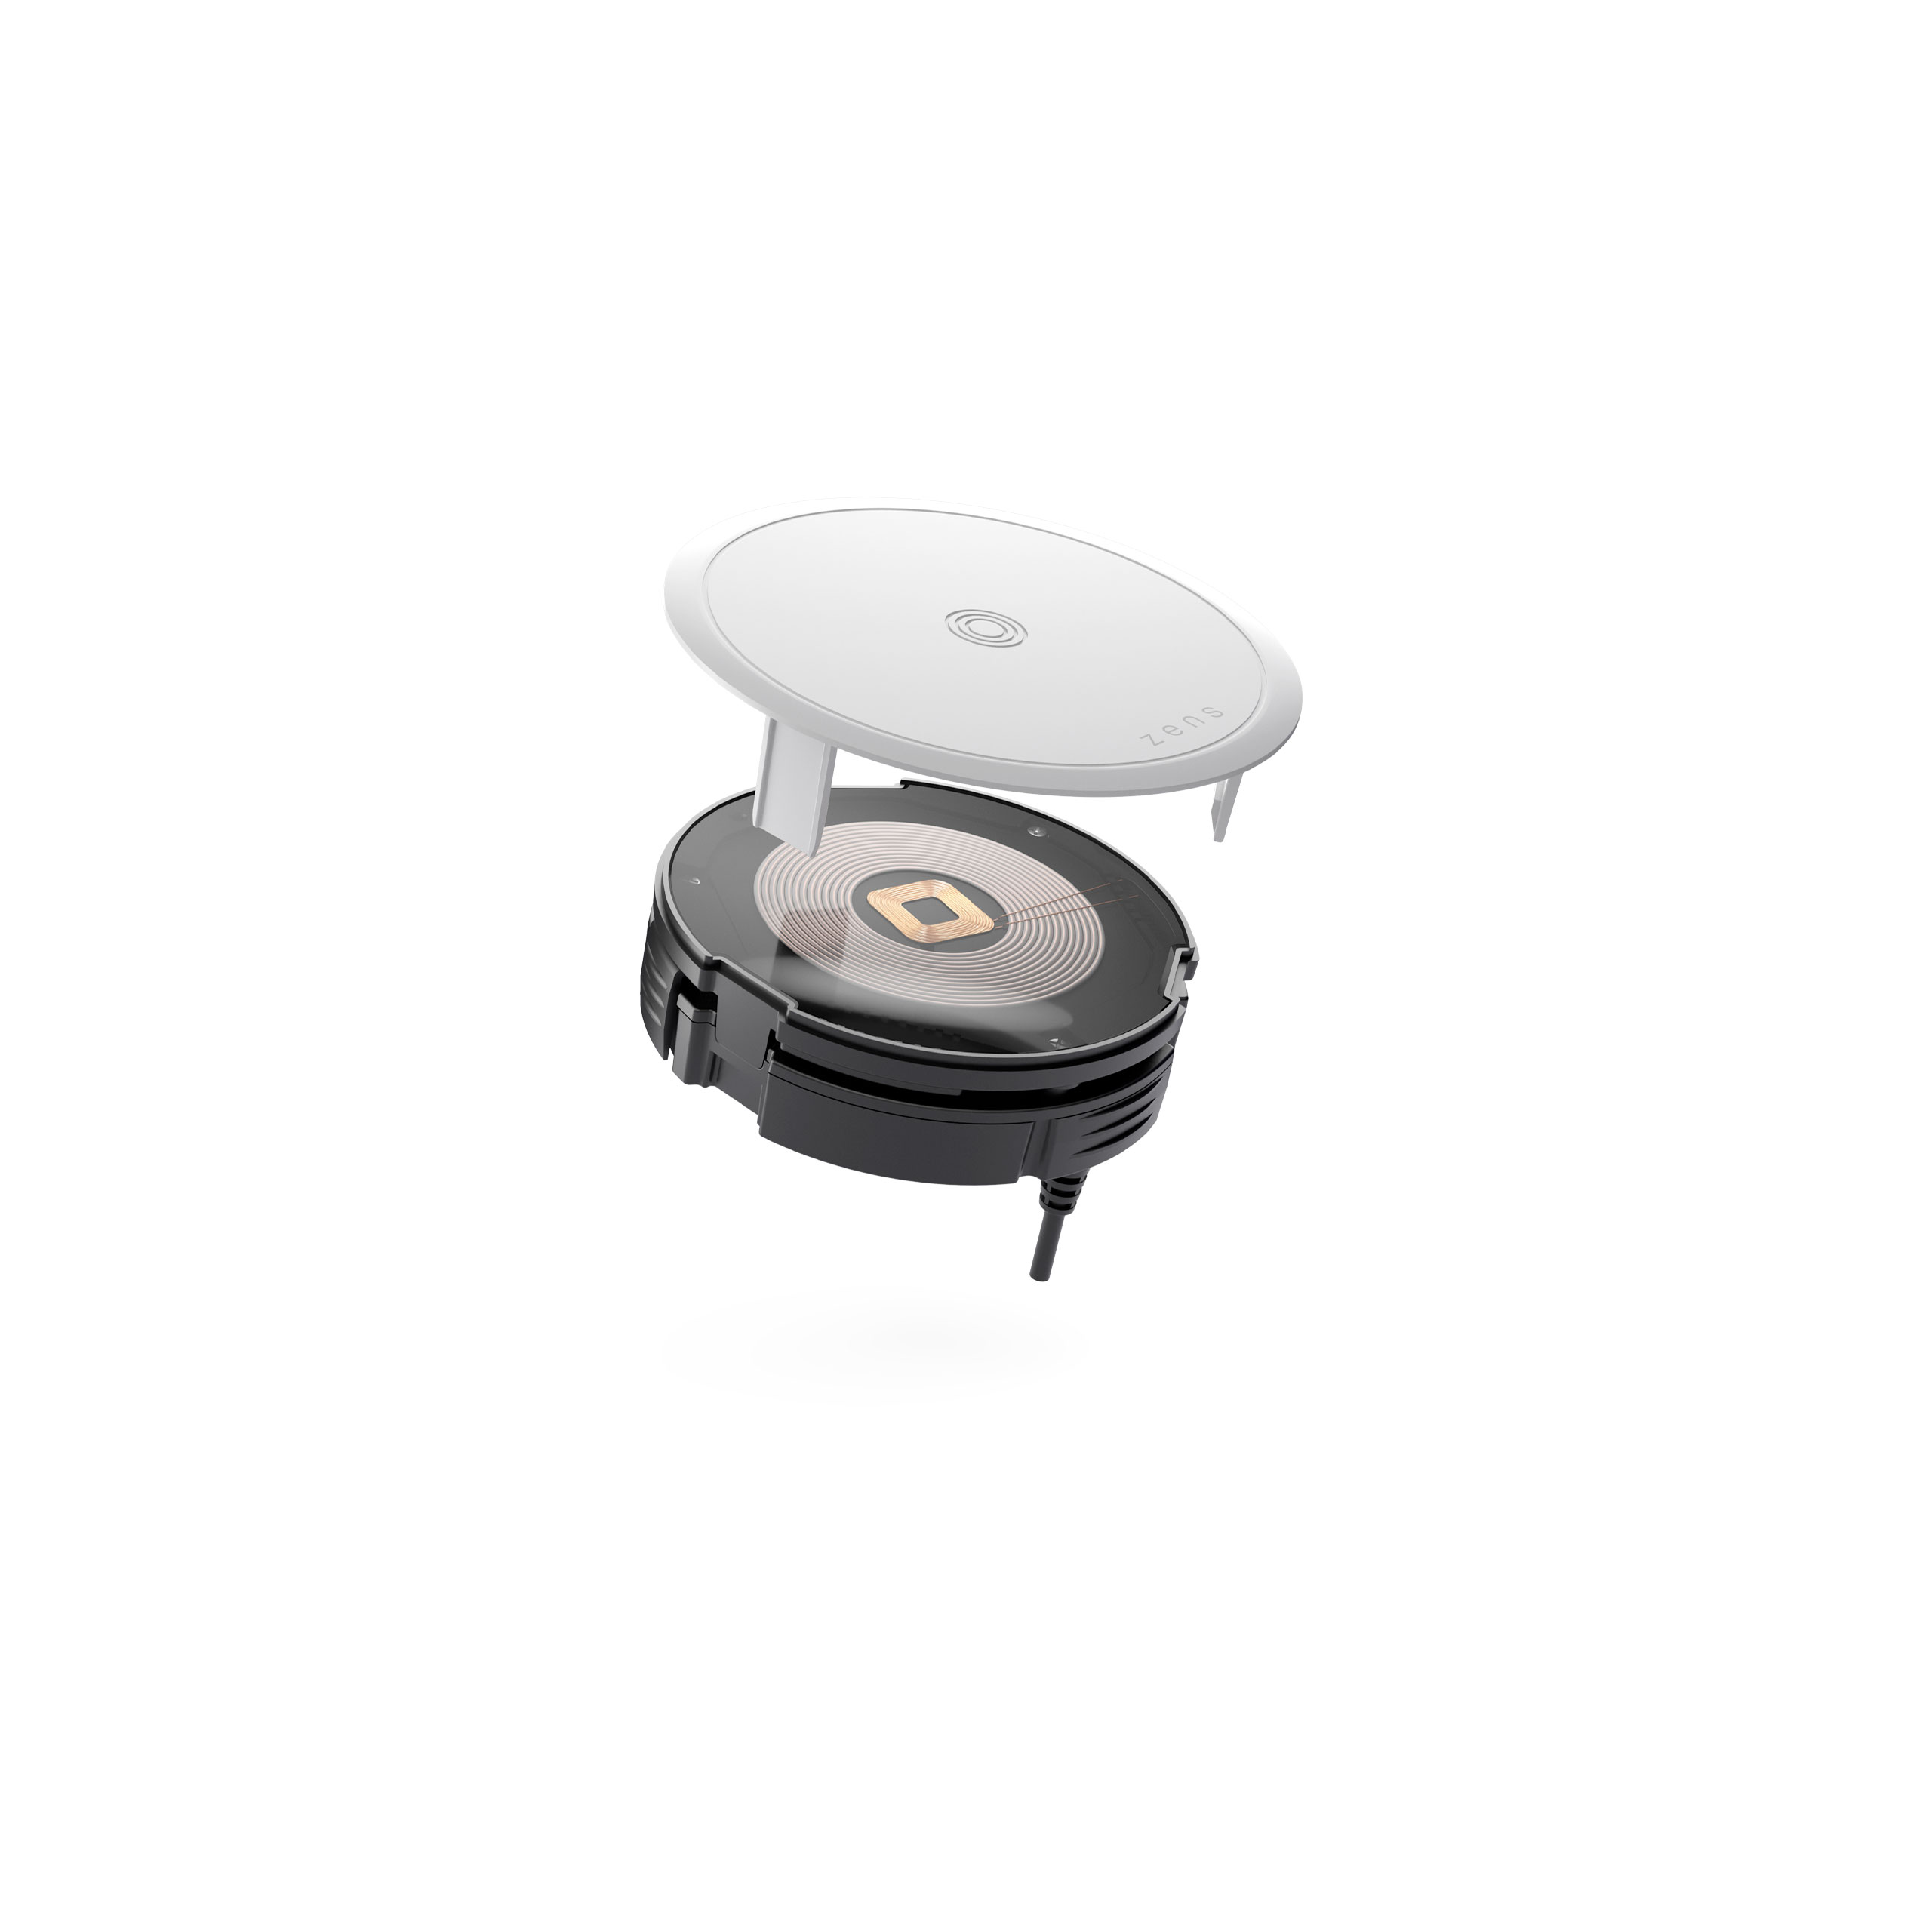 ZETC07N - Zens PuK 3 Wireless Charger Front Side View